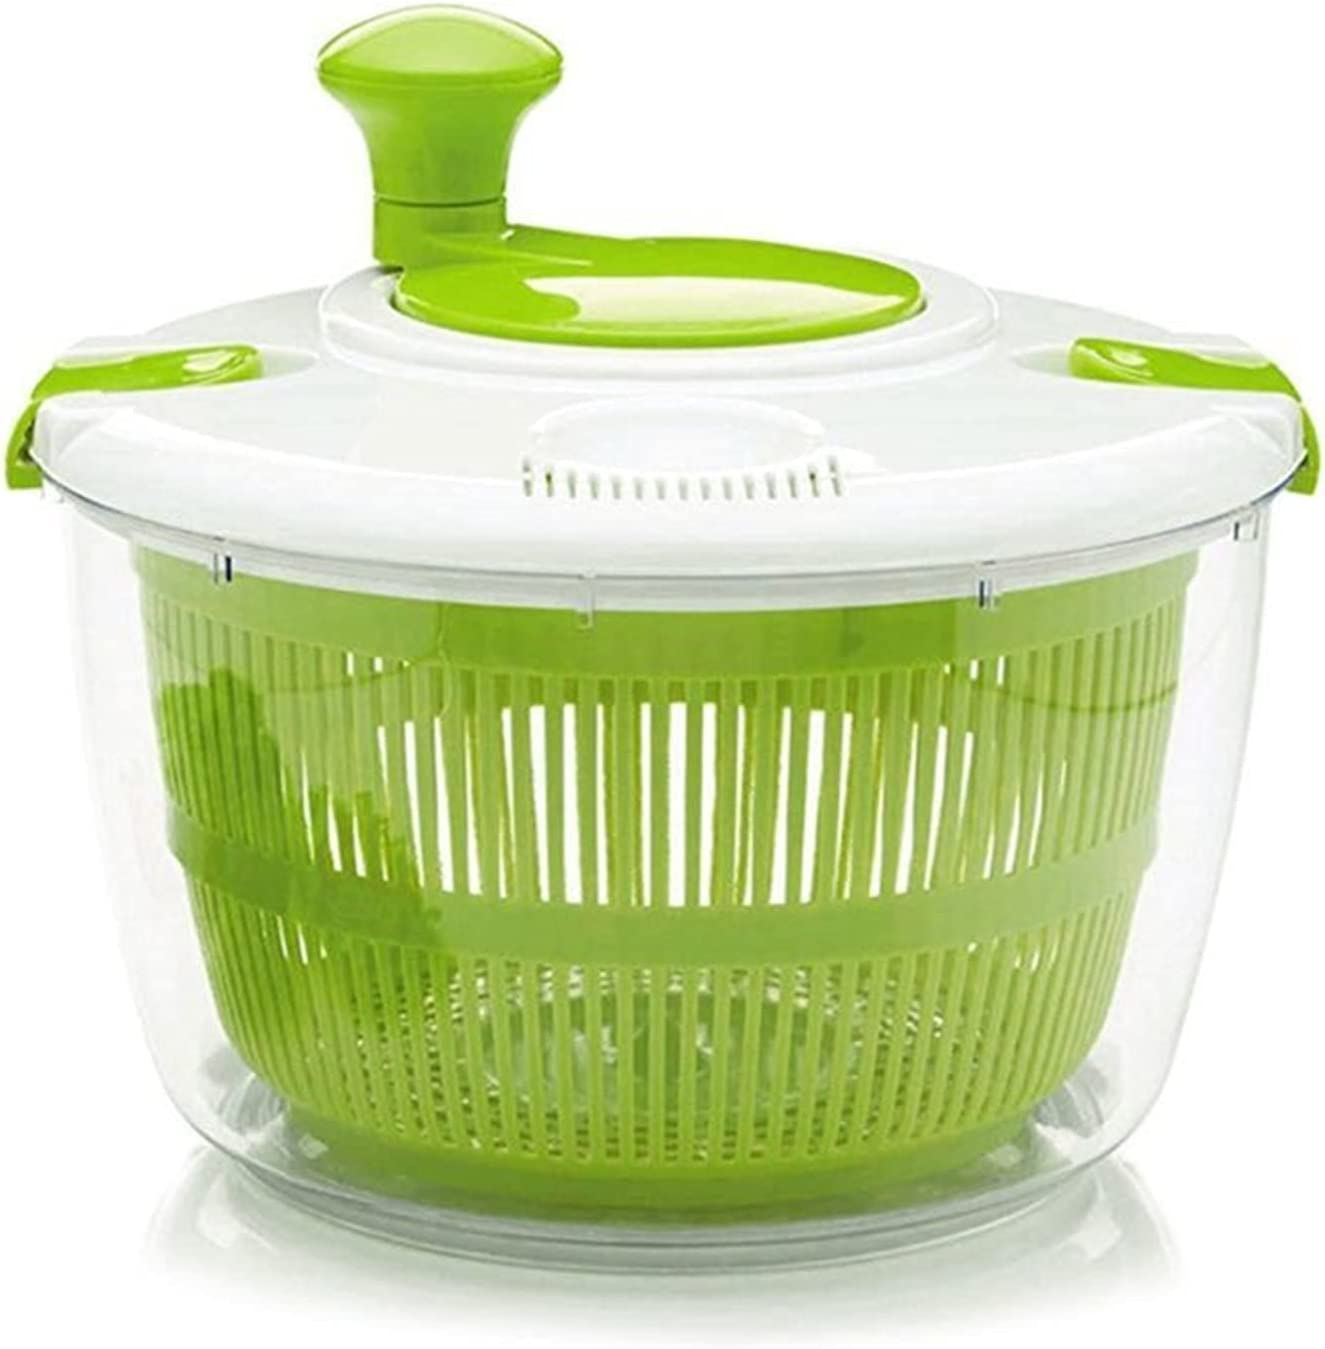 Ranking TOP9 Salad Spinner Vegetable Dehydrator Washer Challenge the lowest price Dryer Cl